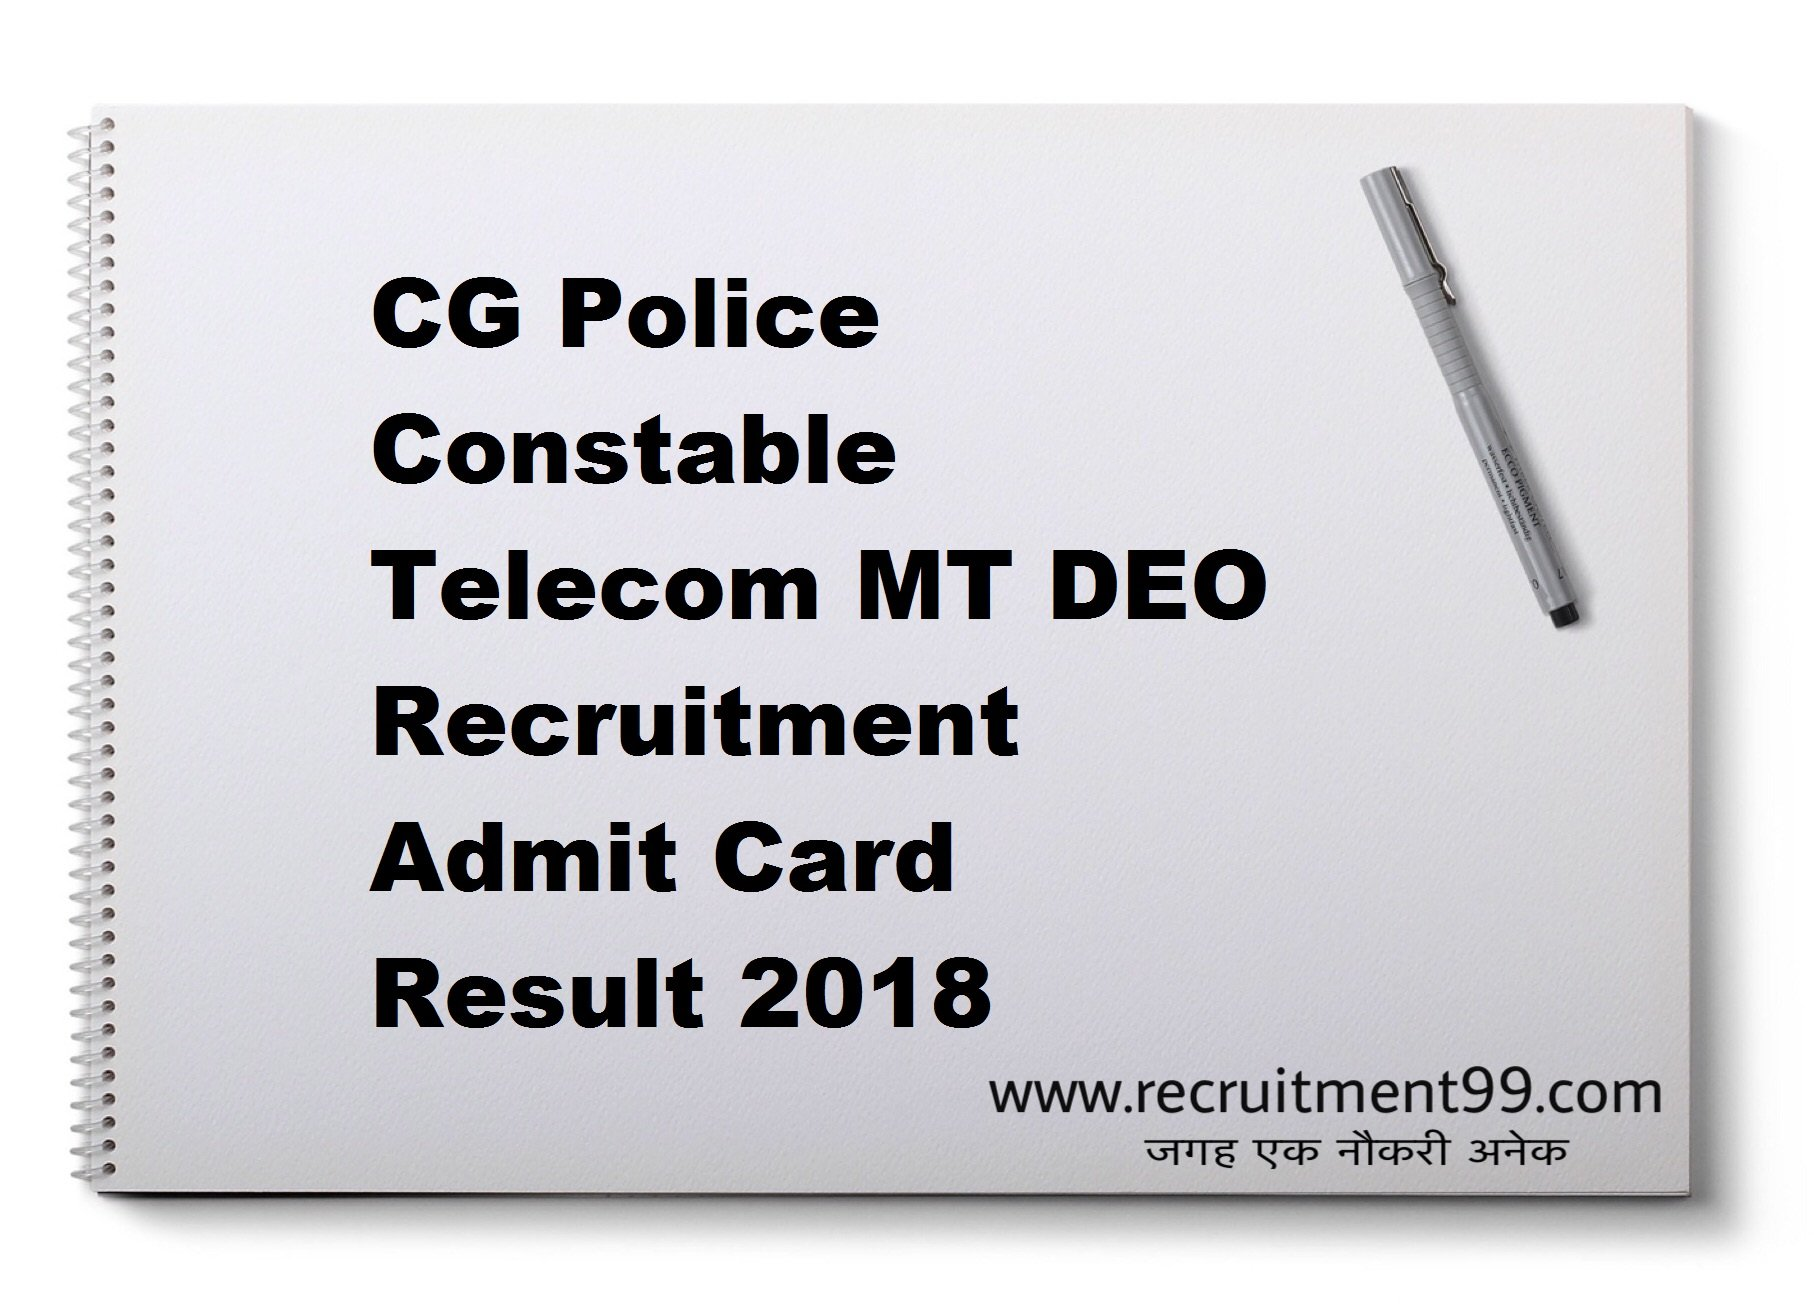 CG Police Constable Telecom MT DEO Recruitment Admit Card Result 2018